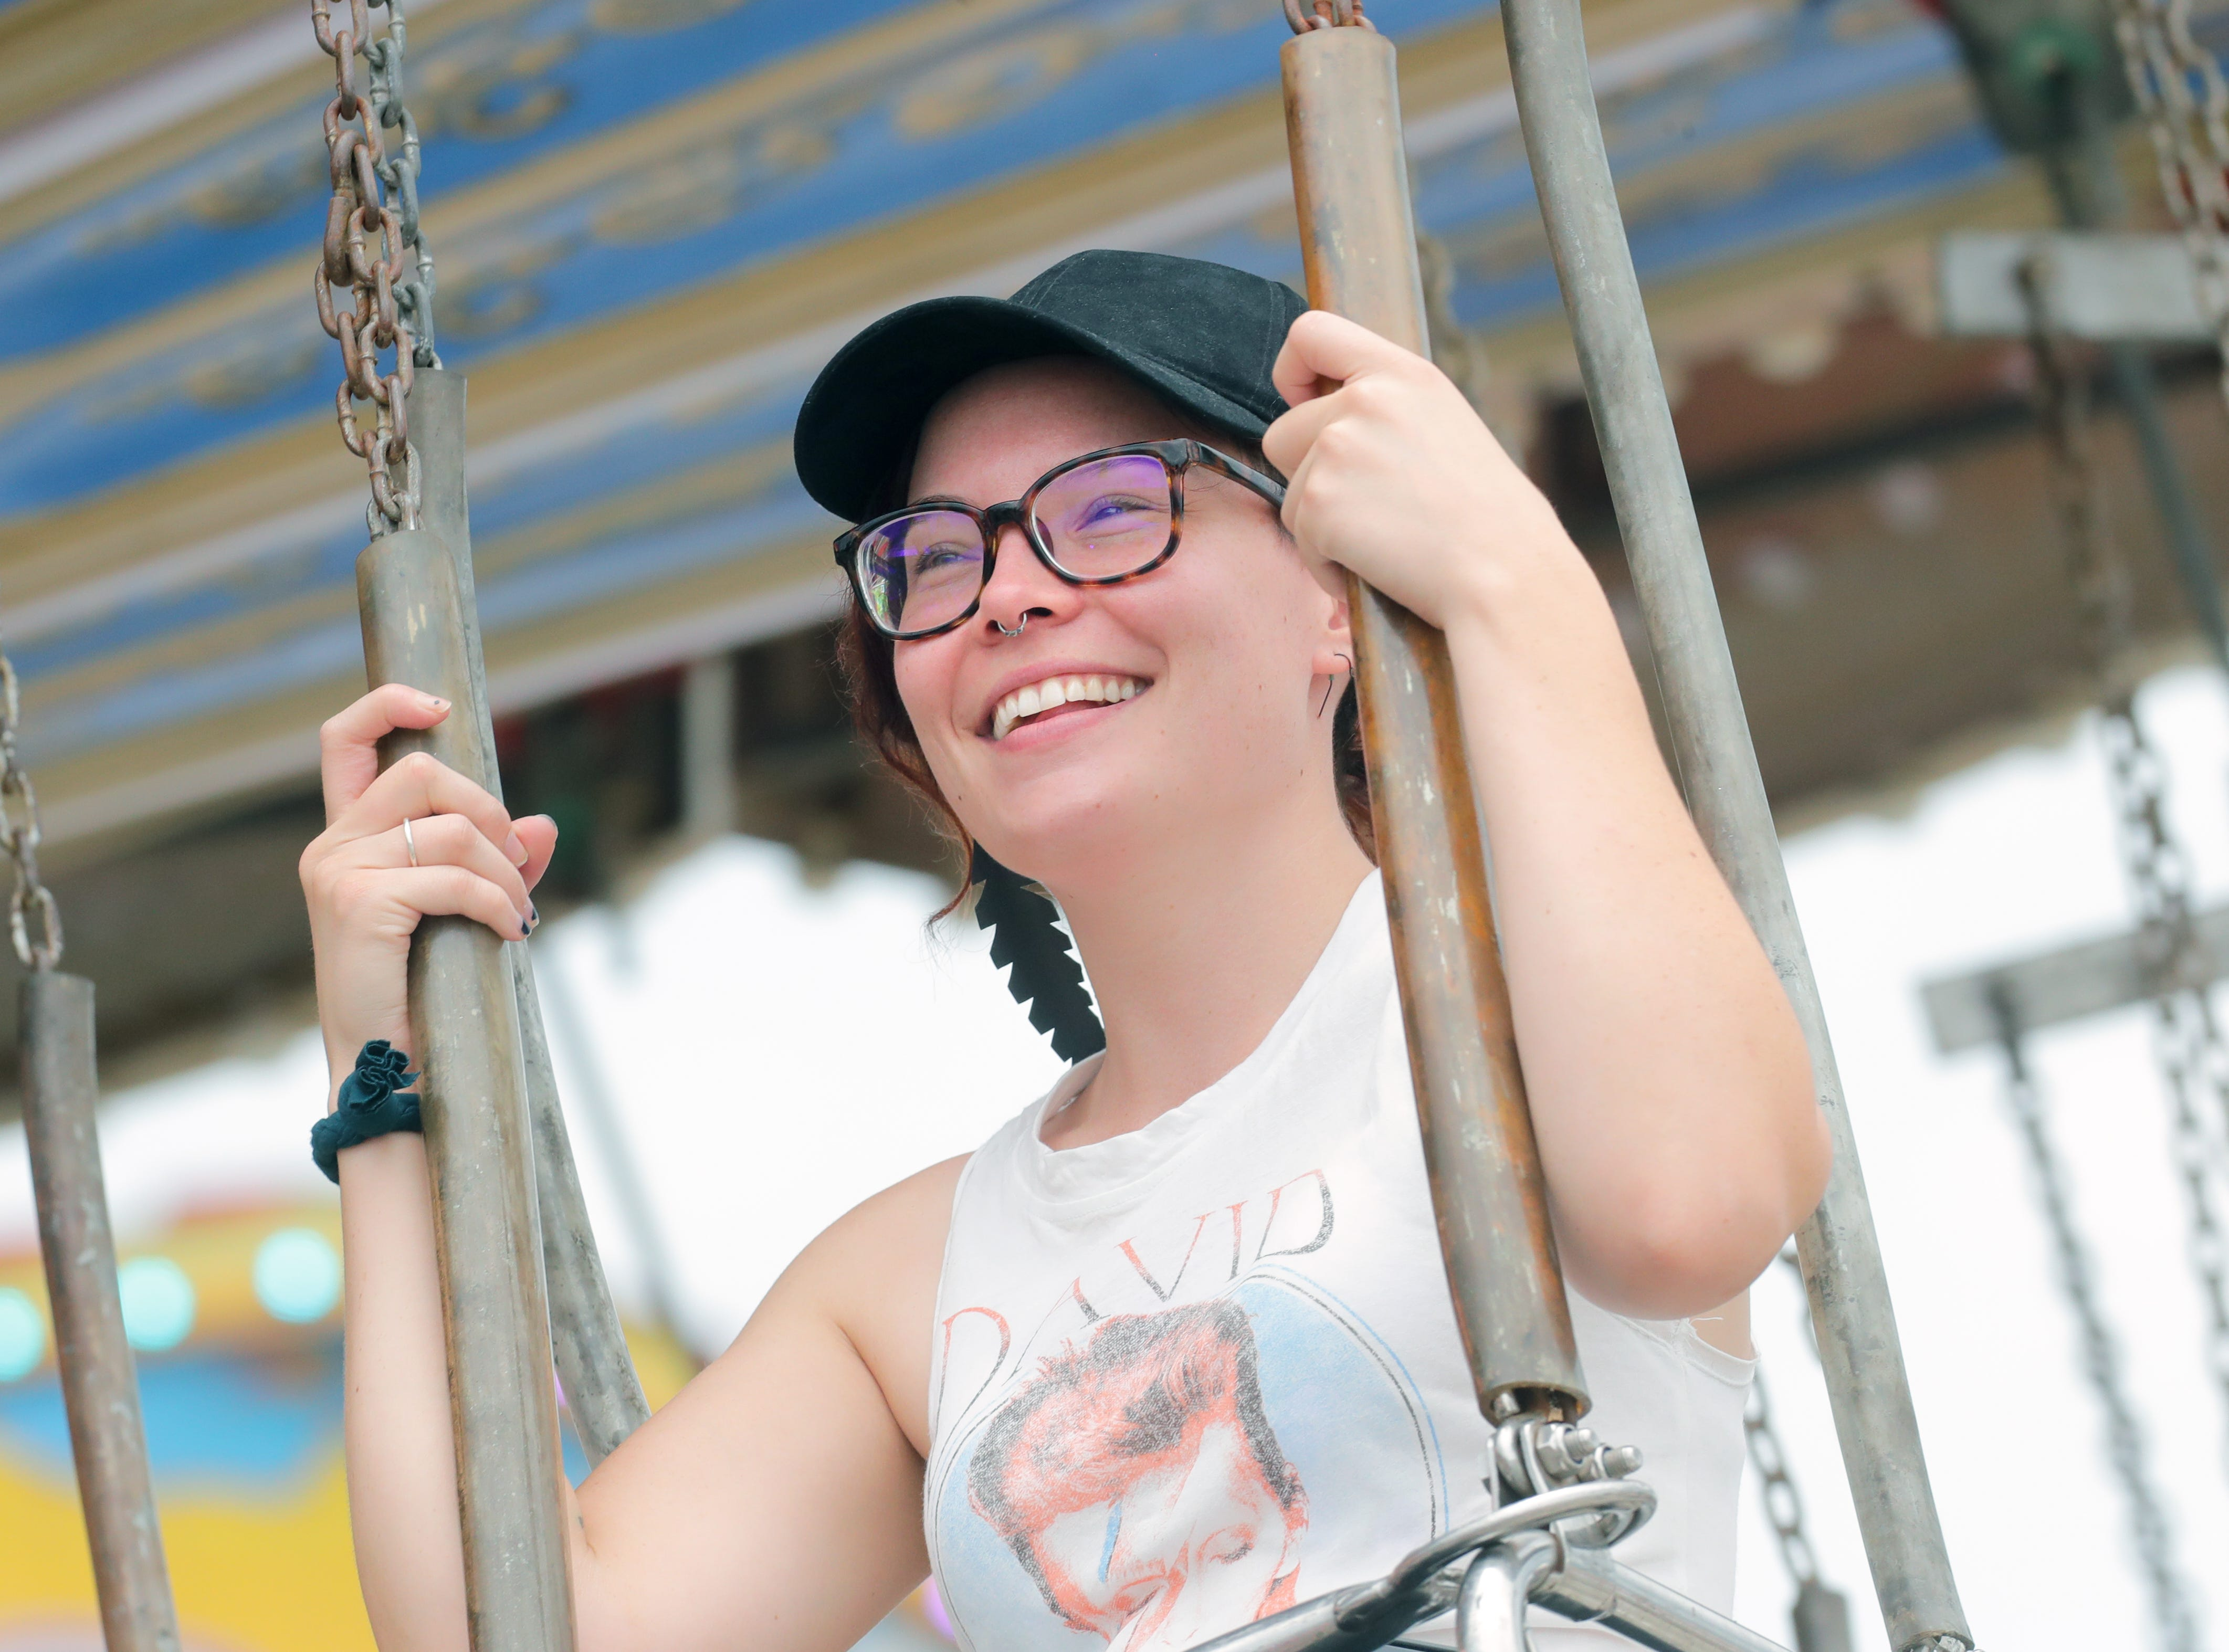 Scenes from the Midway of the Kentucky State Fair on Saturday.